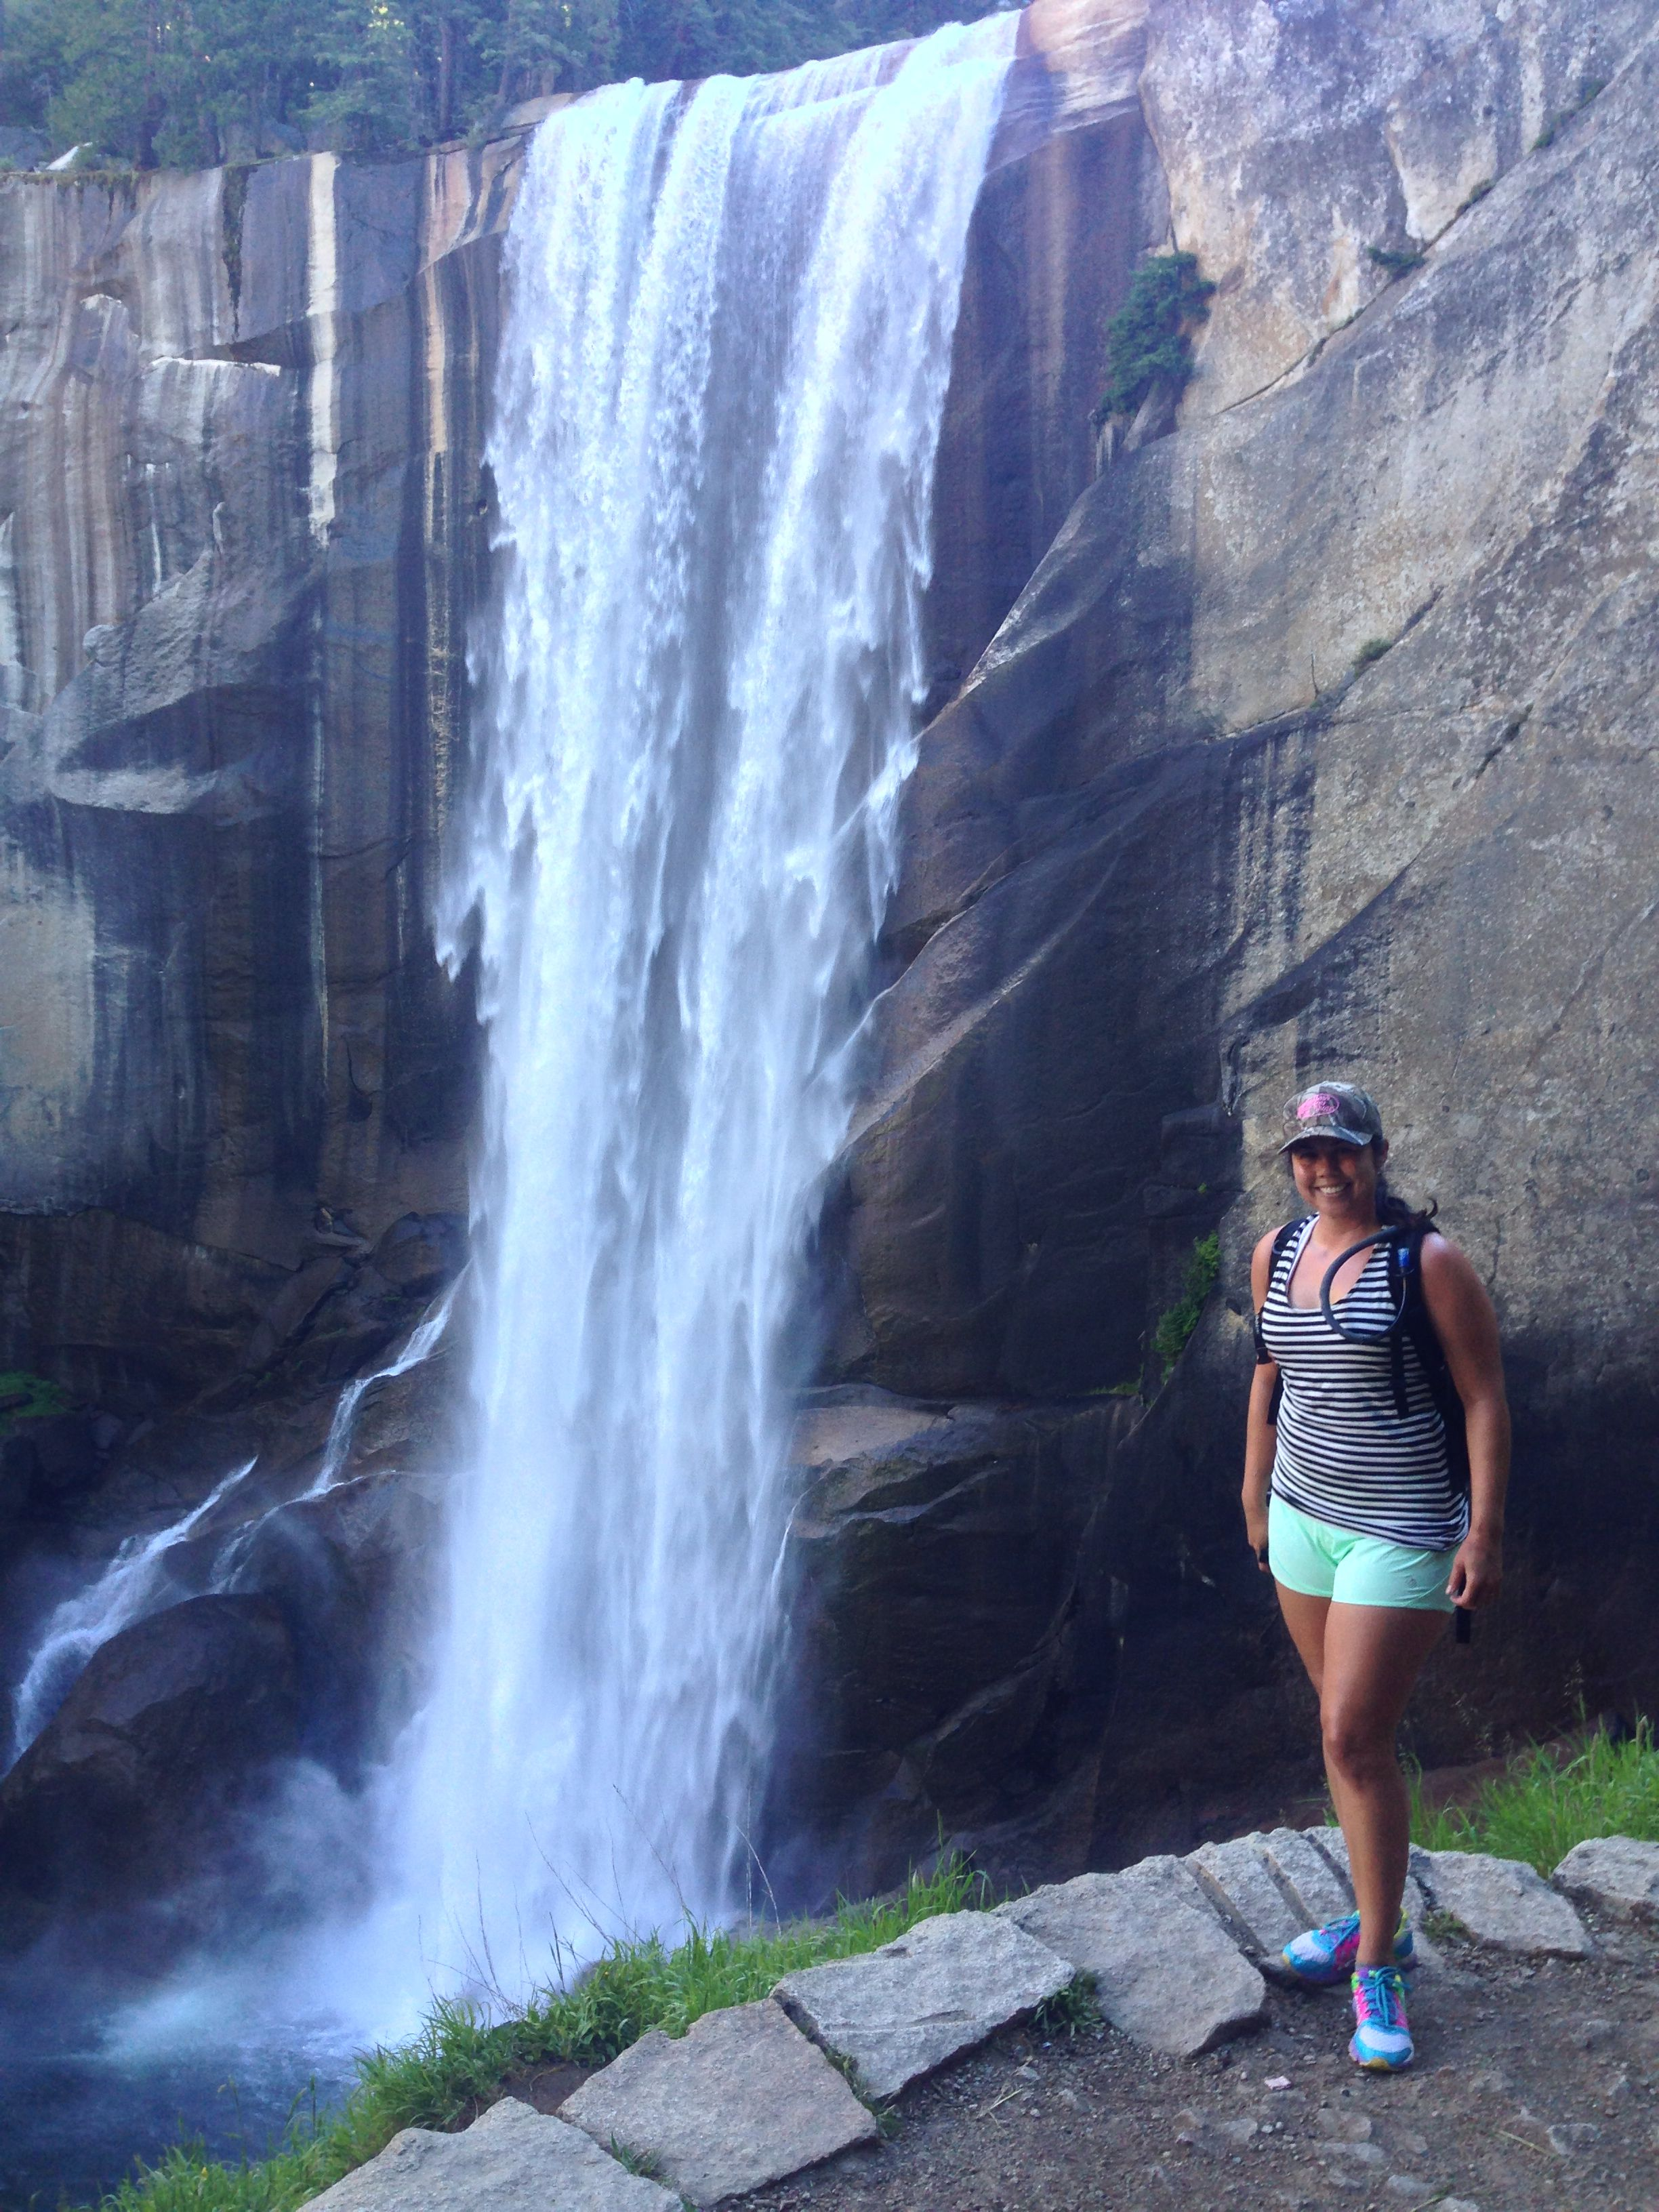 Hiked to a waterfall at Yosemite!